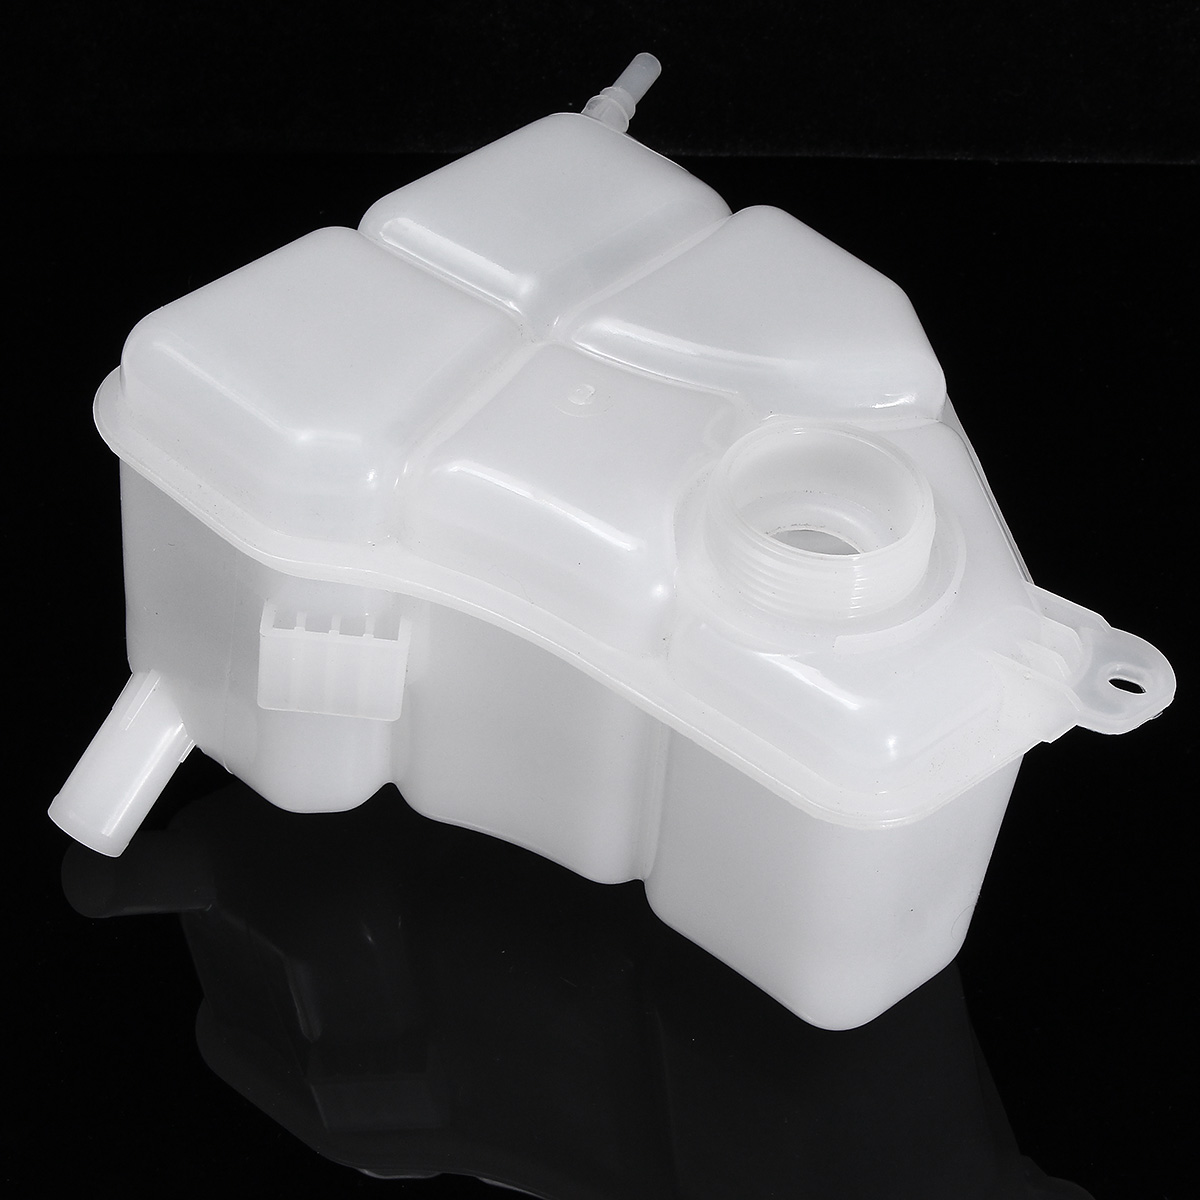 Cap 30776151 30776150 For VOLVO C30 C70 S40 Heater Coolant Expansion Tank